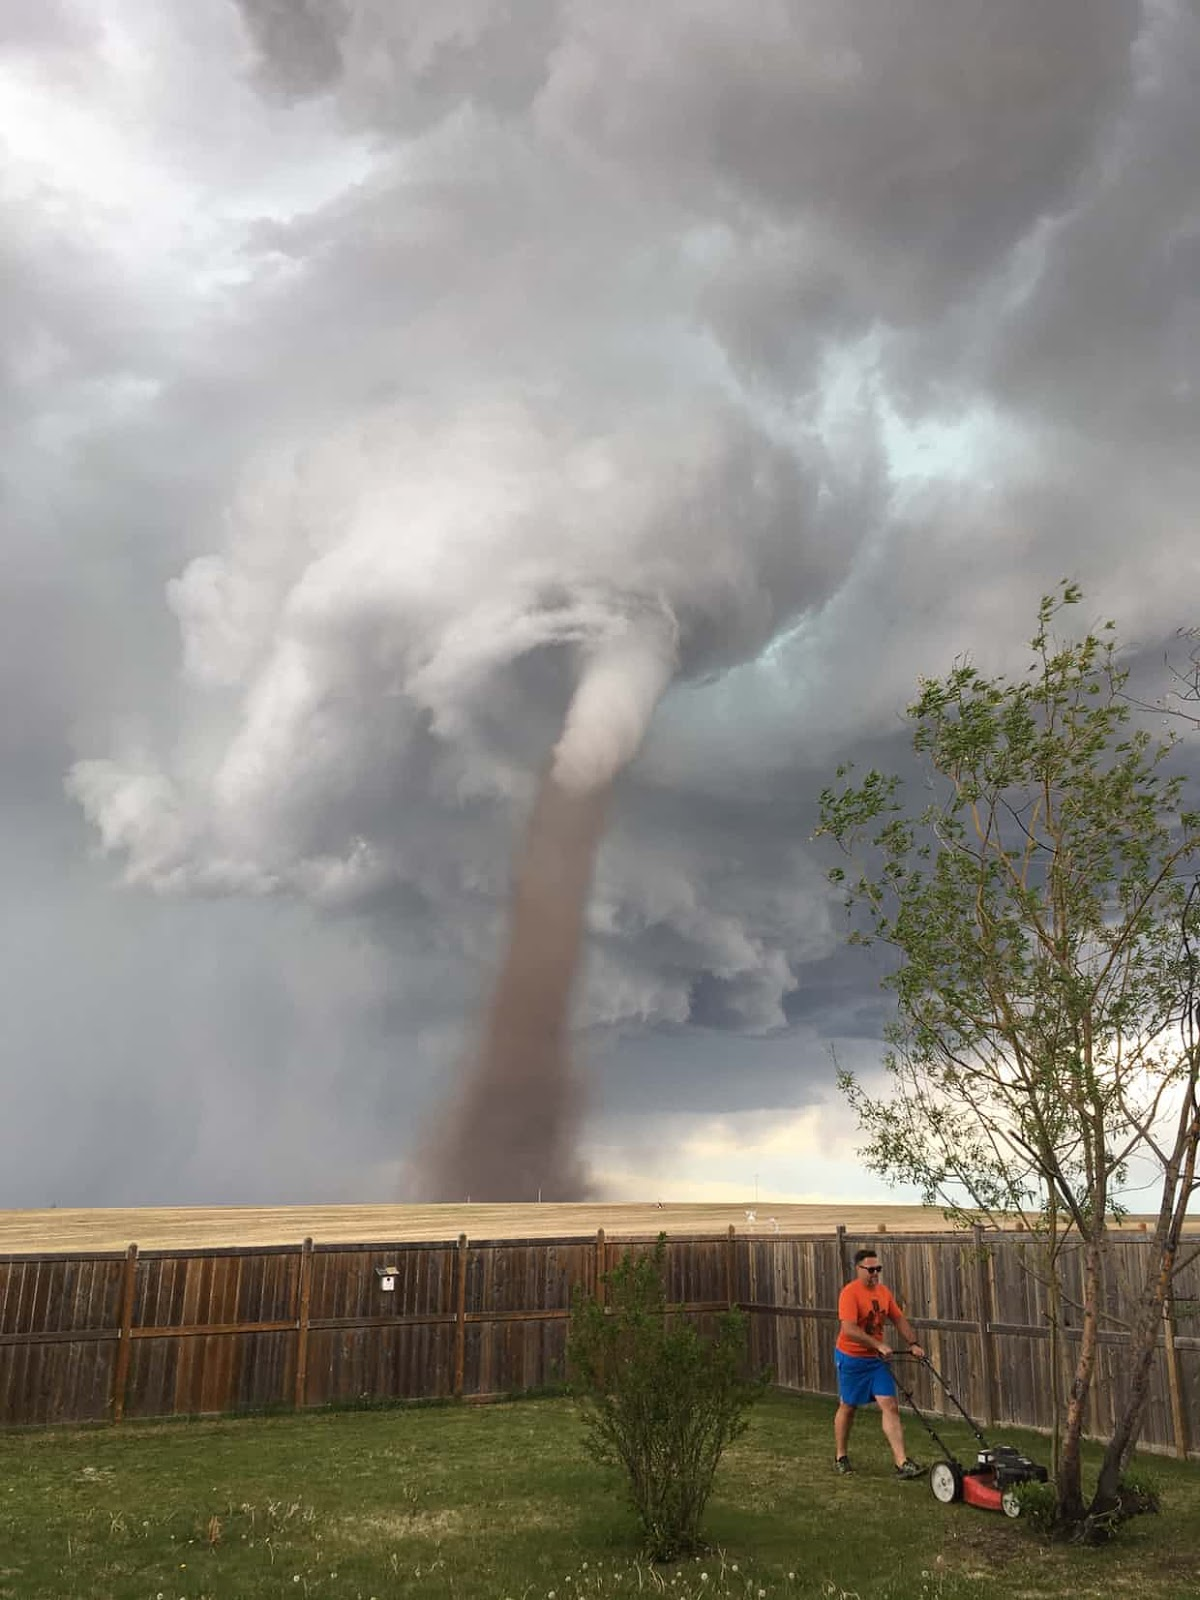 25 Of The Most Intriguing Pictures Of 2017 - A tornado blows in Alberta, Canada